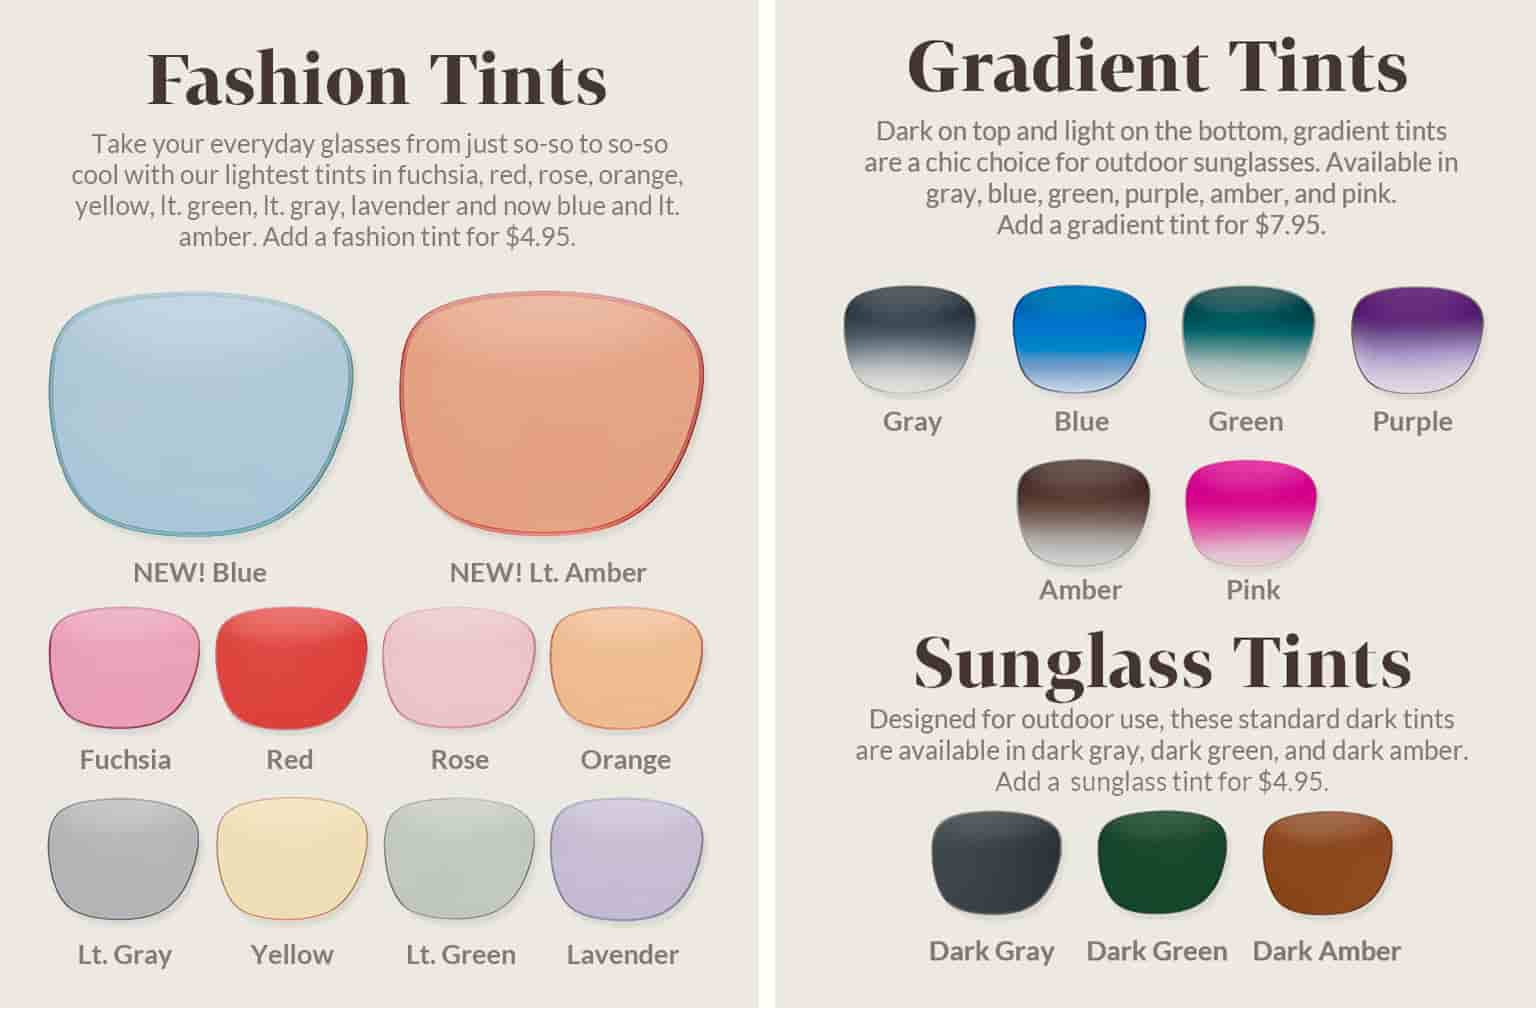 Lens samples of available fashion tints: blue, light amber, fuchsia, red, rose, orange, light gray, yellow, light green and lavender; gradient tints: gray, blue, green, purple, amber, and pink; sunglasses tints: dark gray, dark green, and dark amber.